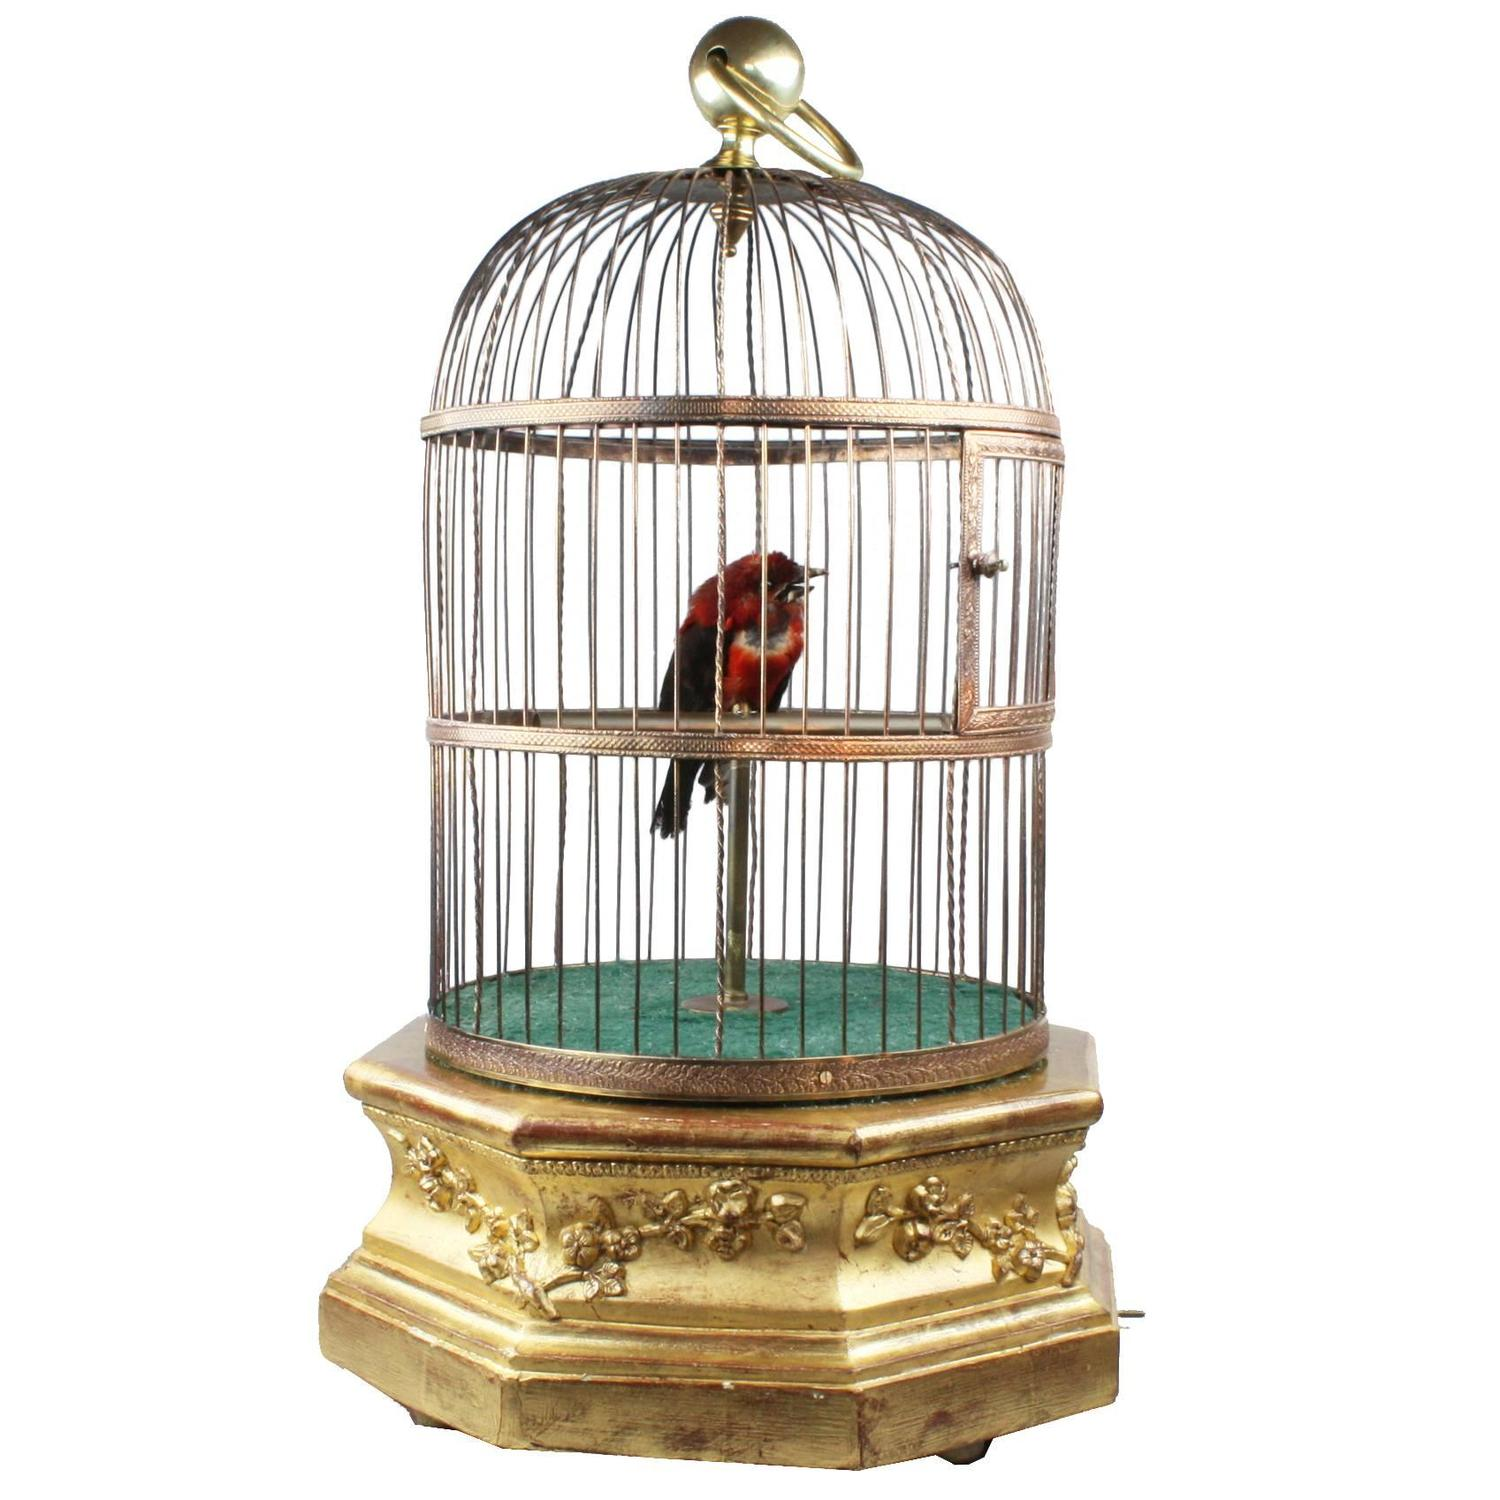 Tremendous Sale Hexagonal Base Single Singing Bird Cage By Bontems Cage By Bontems Vintage Bird Cage Hanging Stand Vintage Birdcage Light Fixture Hexagonal Base Single Singing Bird houzz-03 Vintage Bird Cage